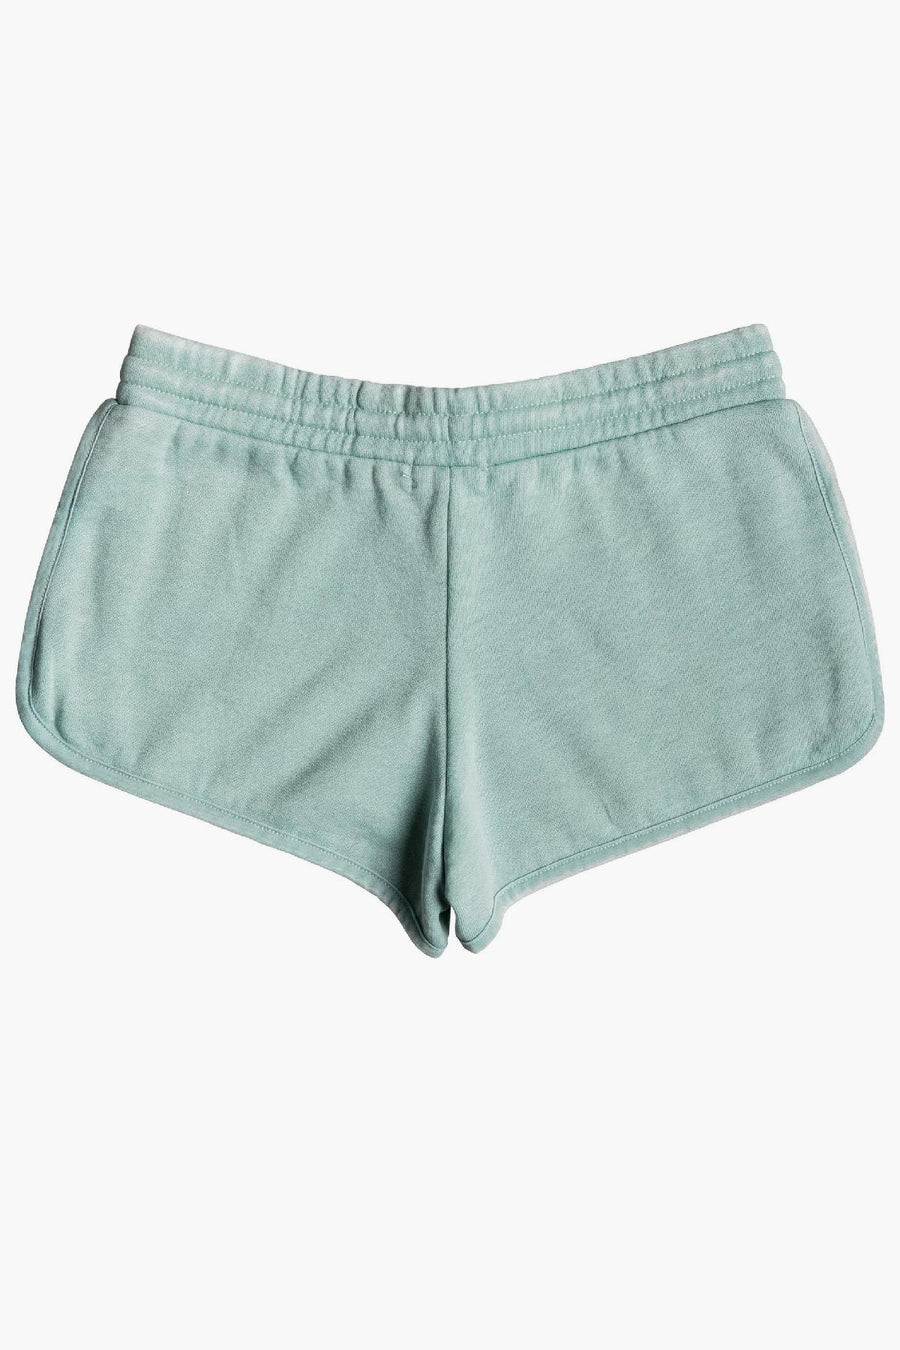 Roxy New Advenutures Sweatshorts